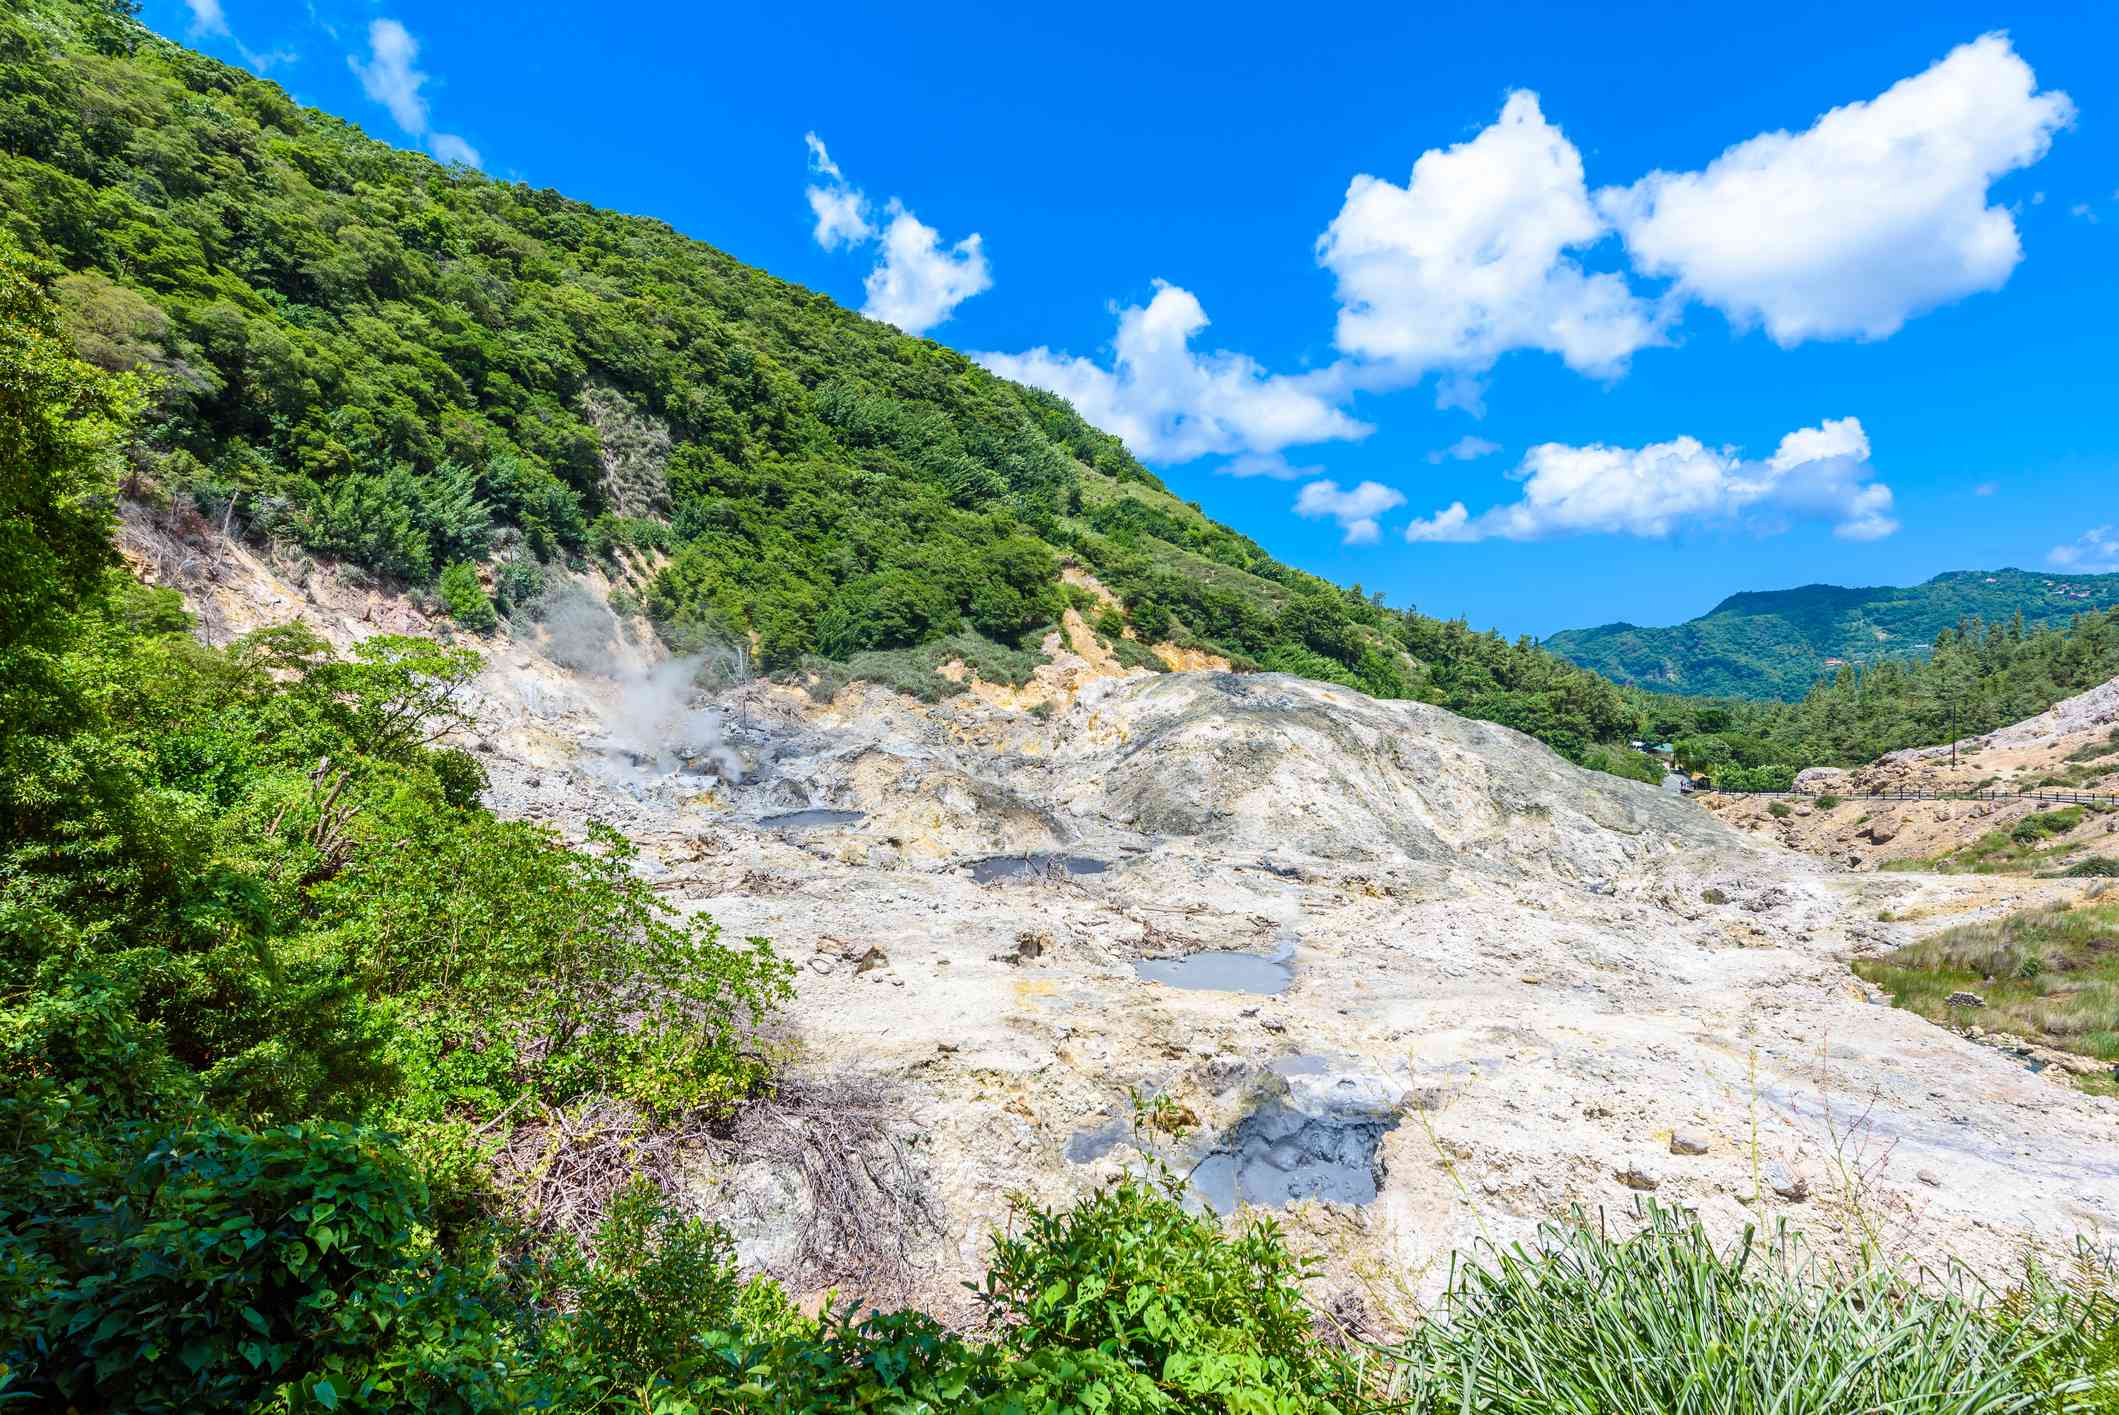 View of Drive-In Volcano Sulphur Springs on the Caribbean island of St. Lucia